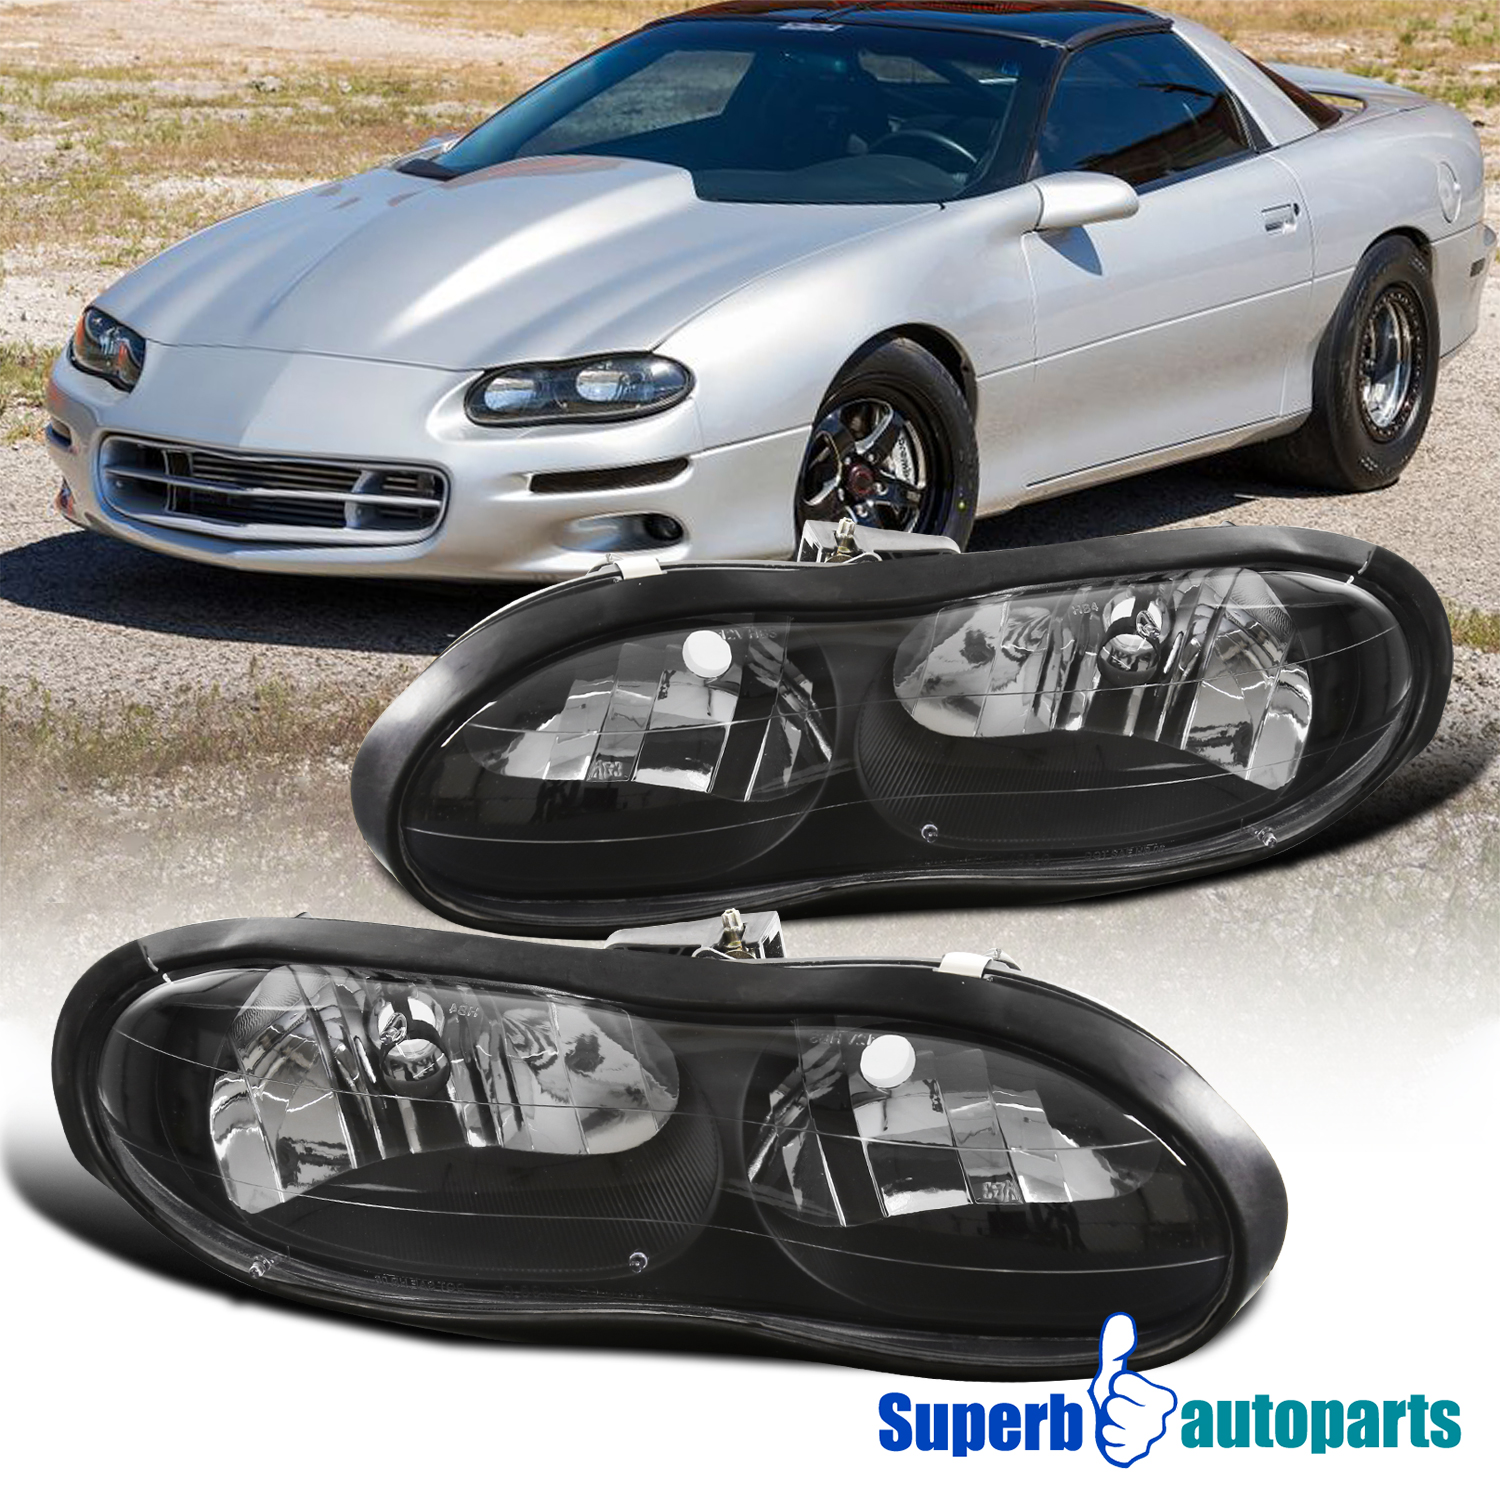 Details About For 1998 2002 Chevrolet Camaro Base Z28 Z28 Ss Black Headlights